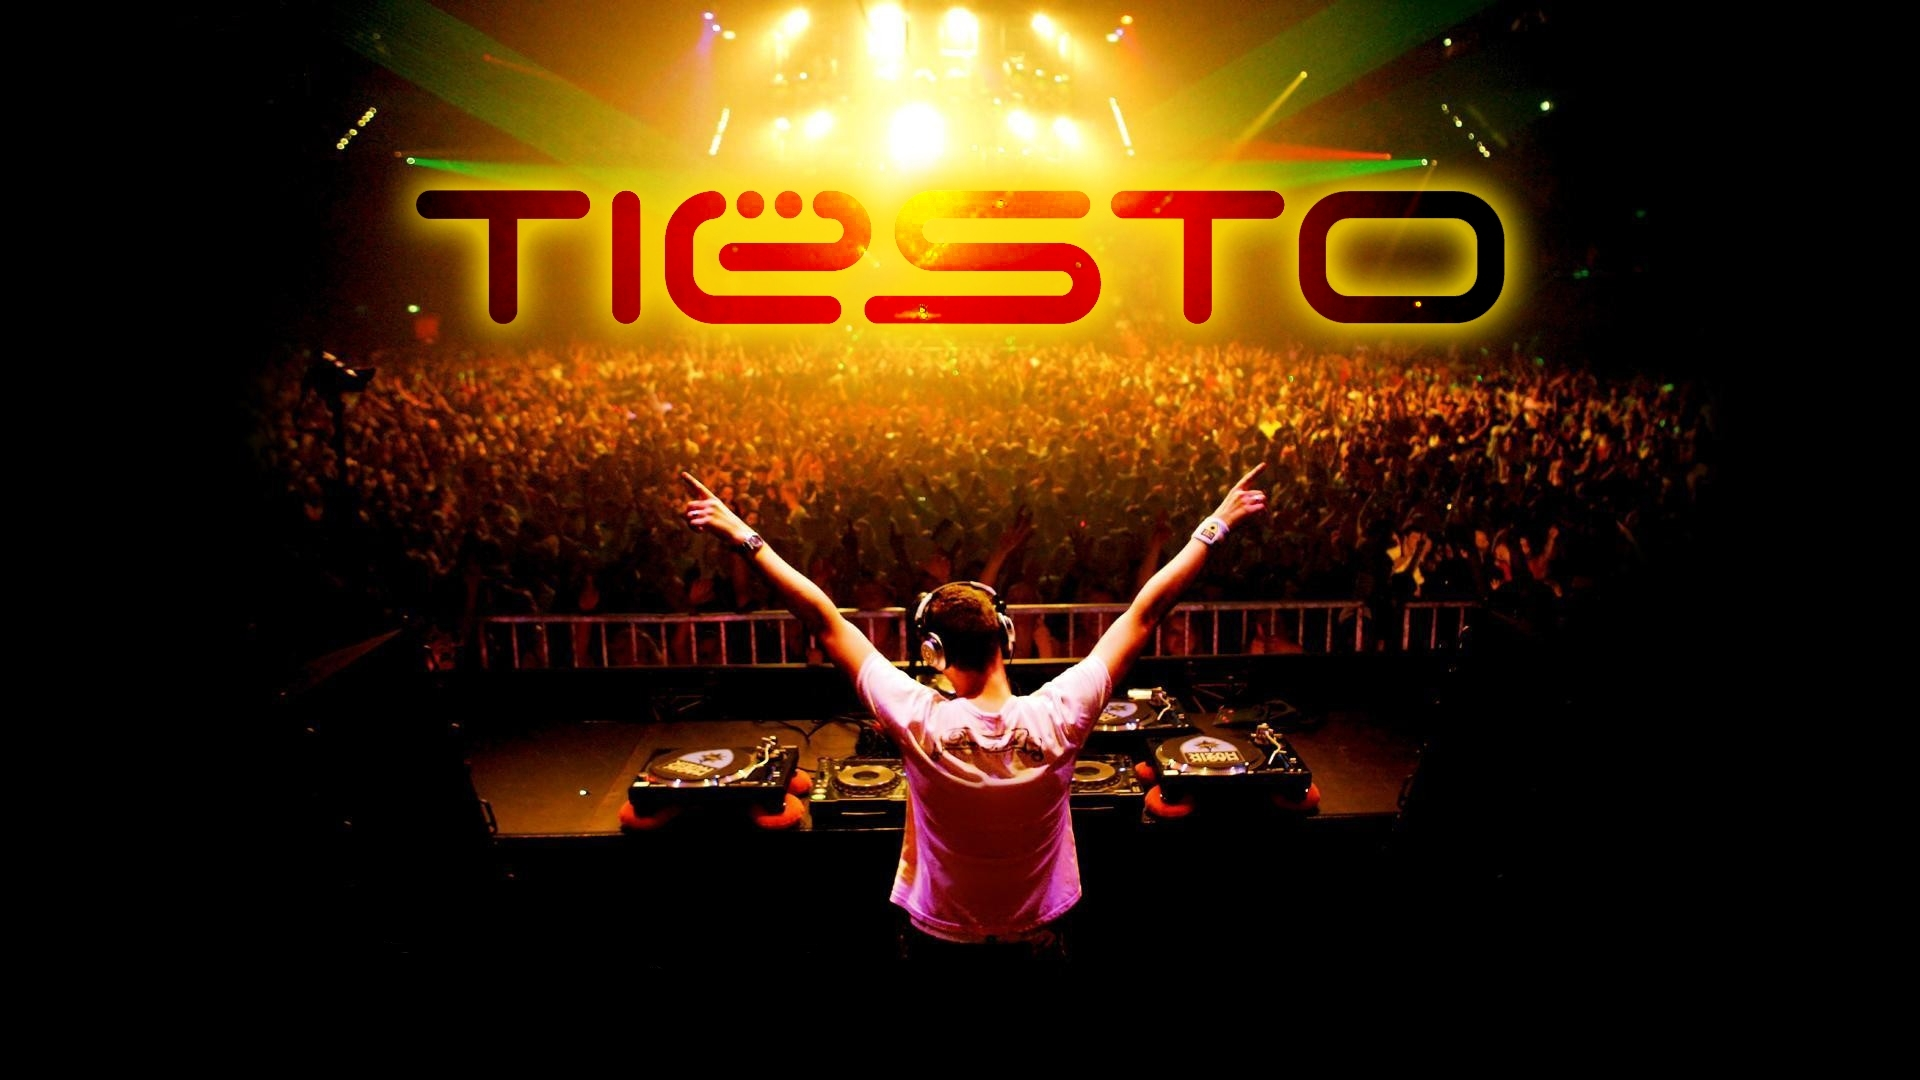 dj tiesto  letters  crowd  HD Wallpaper